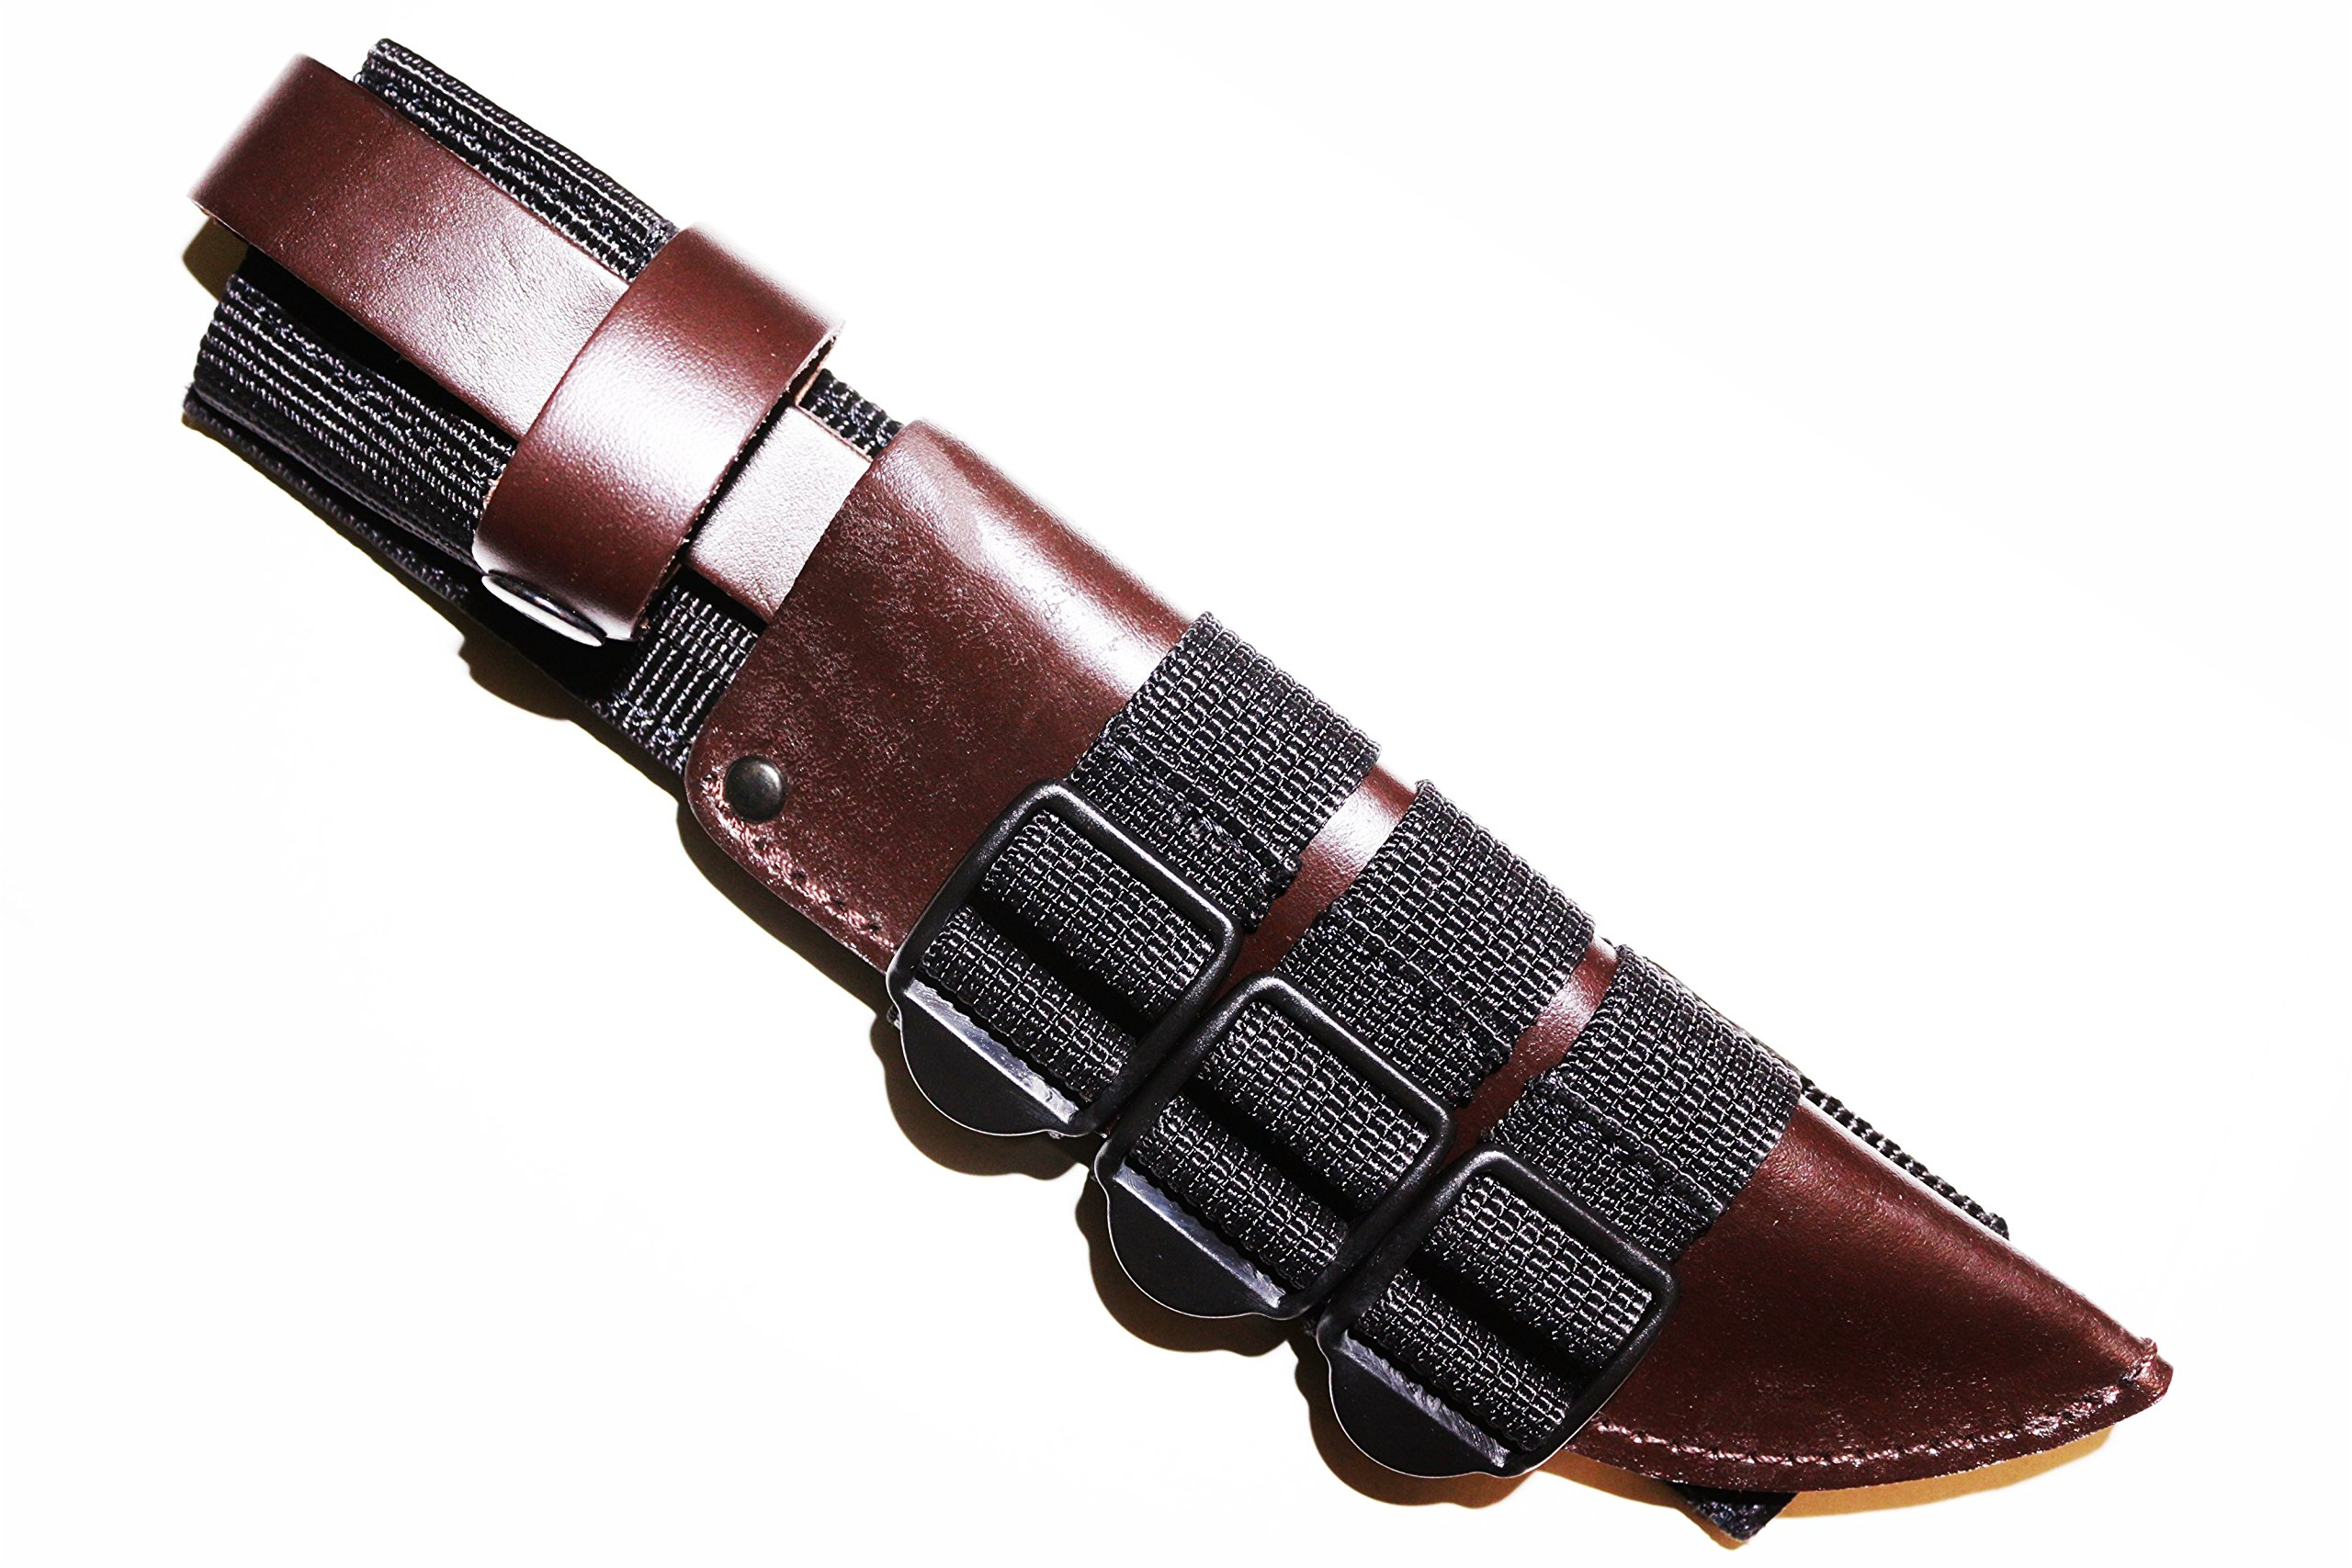 Molle Knife Sheath Adapter Holder/Attaching Knife to M.O.L.L.E. Webbing/Holds Ka-bar Bowie Kydex Leather Sheaths/Molle Sheath Carrier for Fixed-Blade Knifes/Black Color/Fits Sheaths from 4'' up to 12''